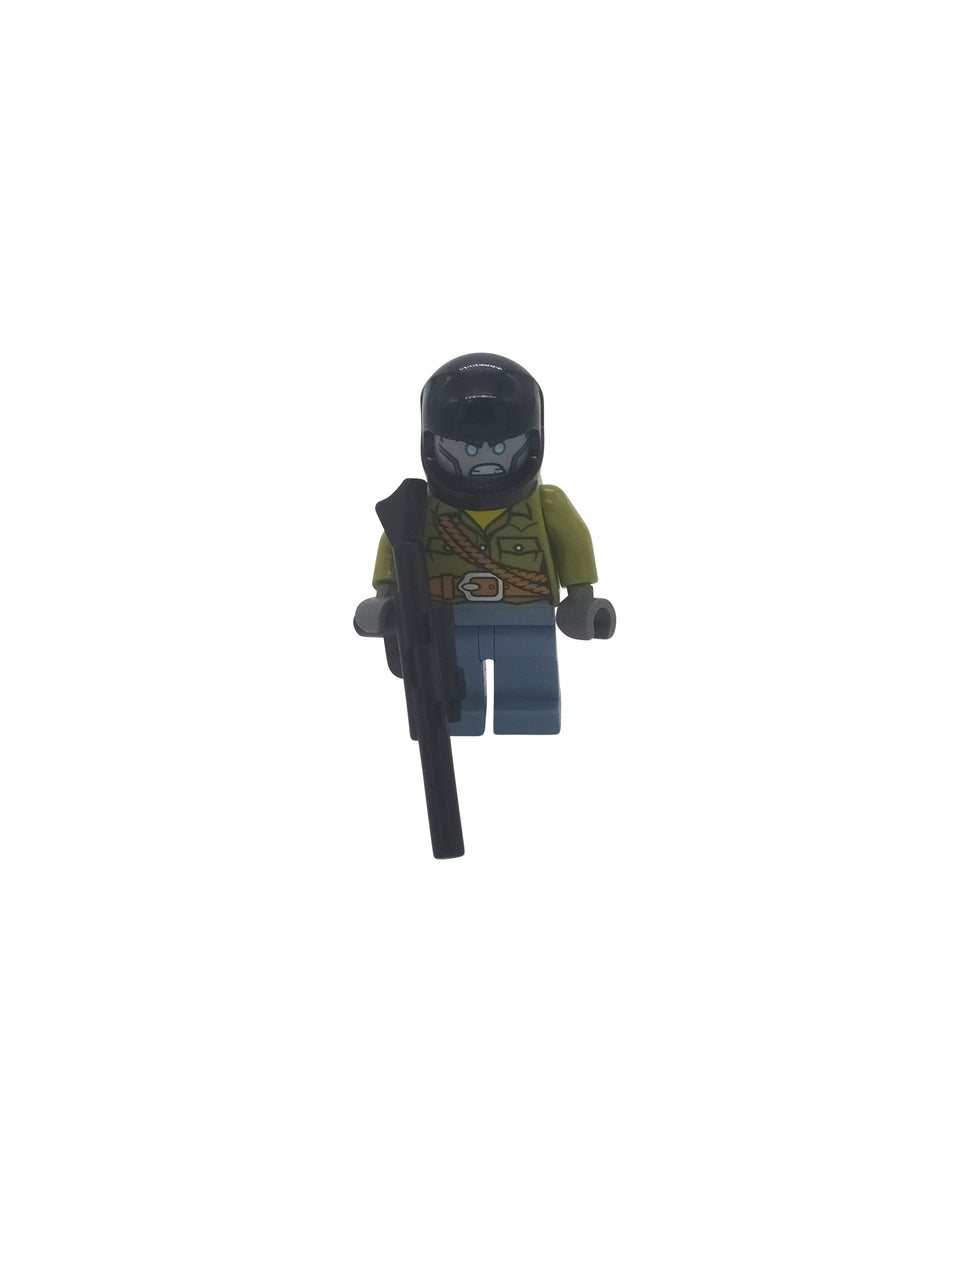 Lego Warrior with accessories